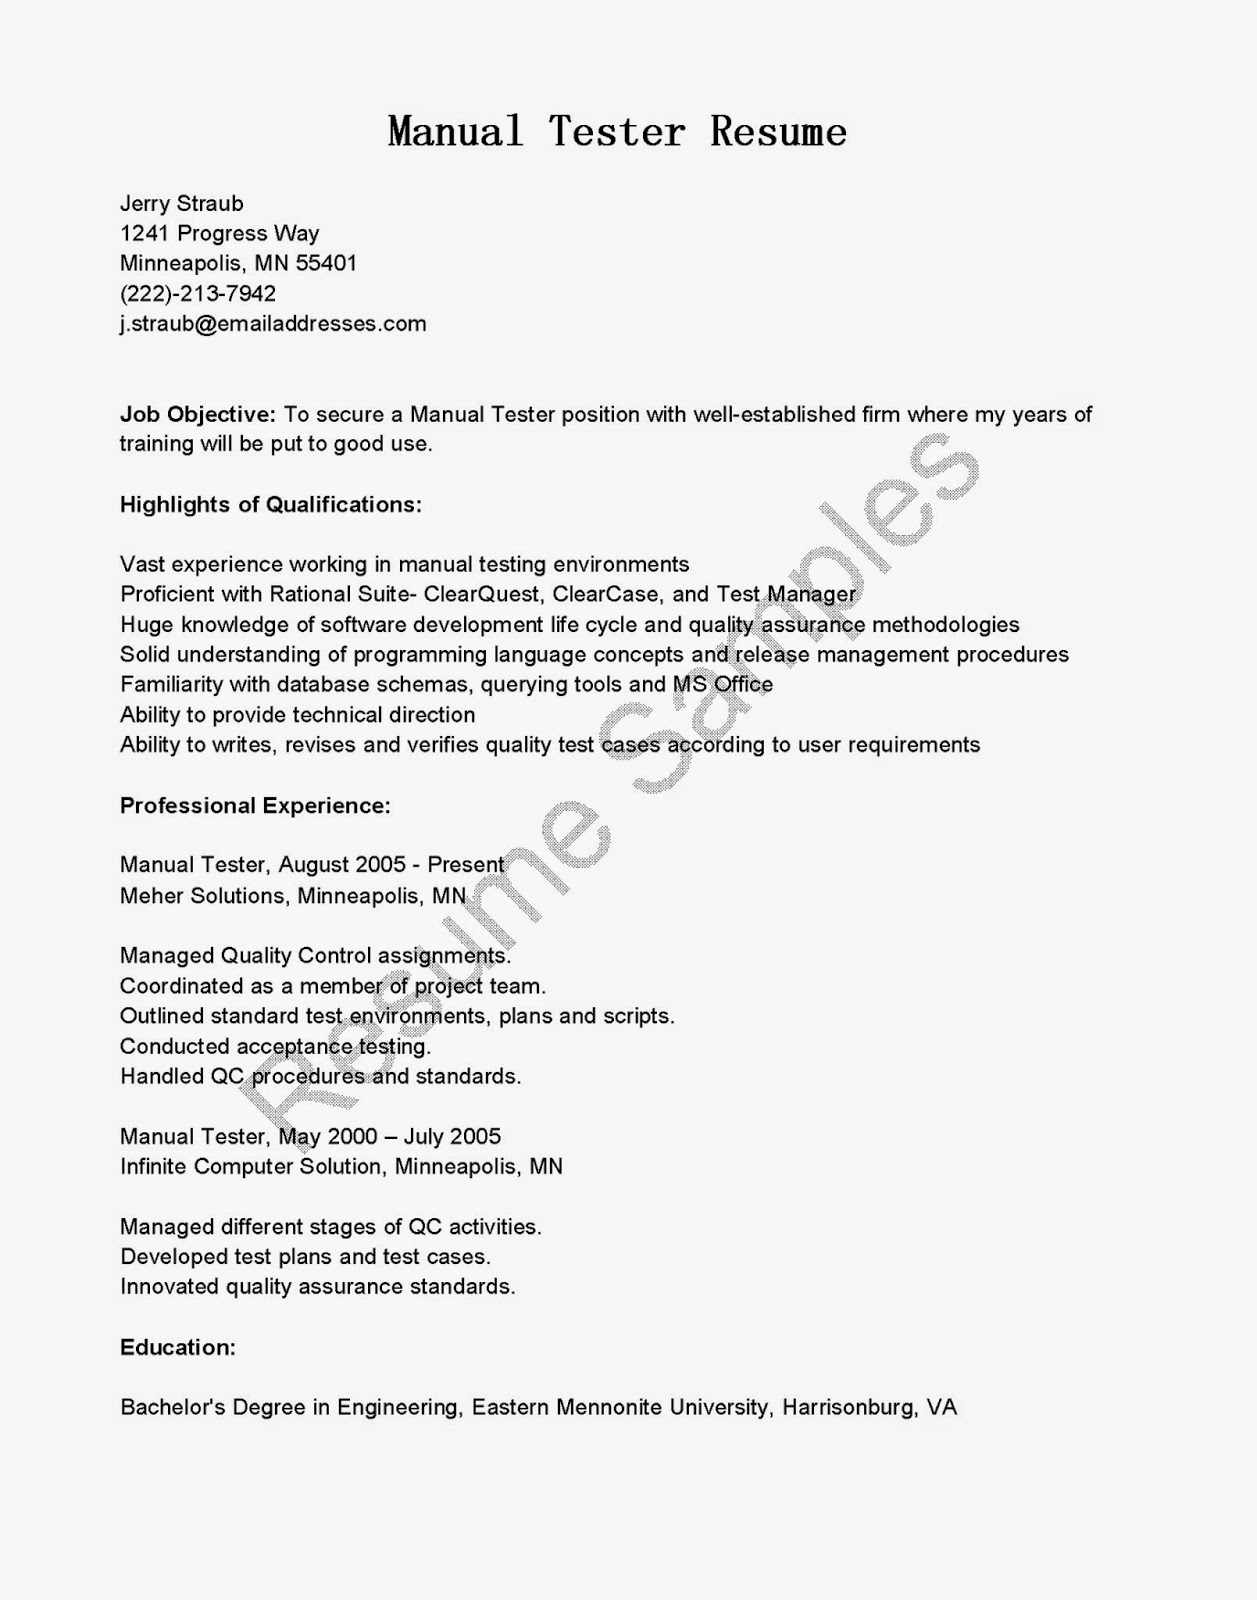 Software Tester Resume Sample Resume Samples Manual Tester Resume Sample